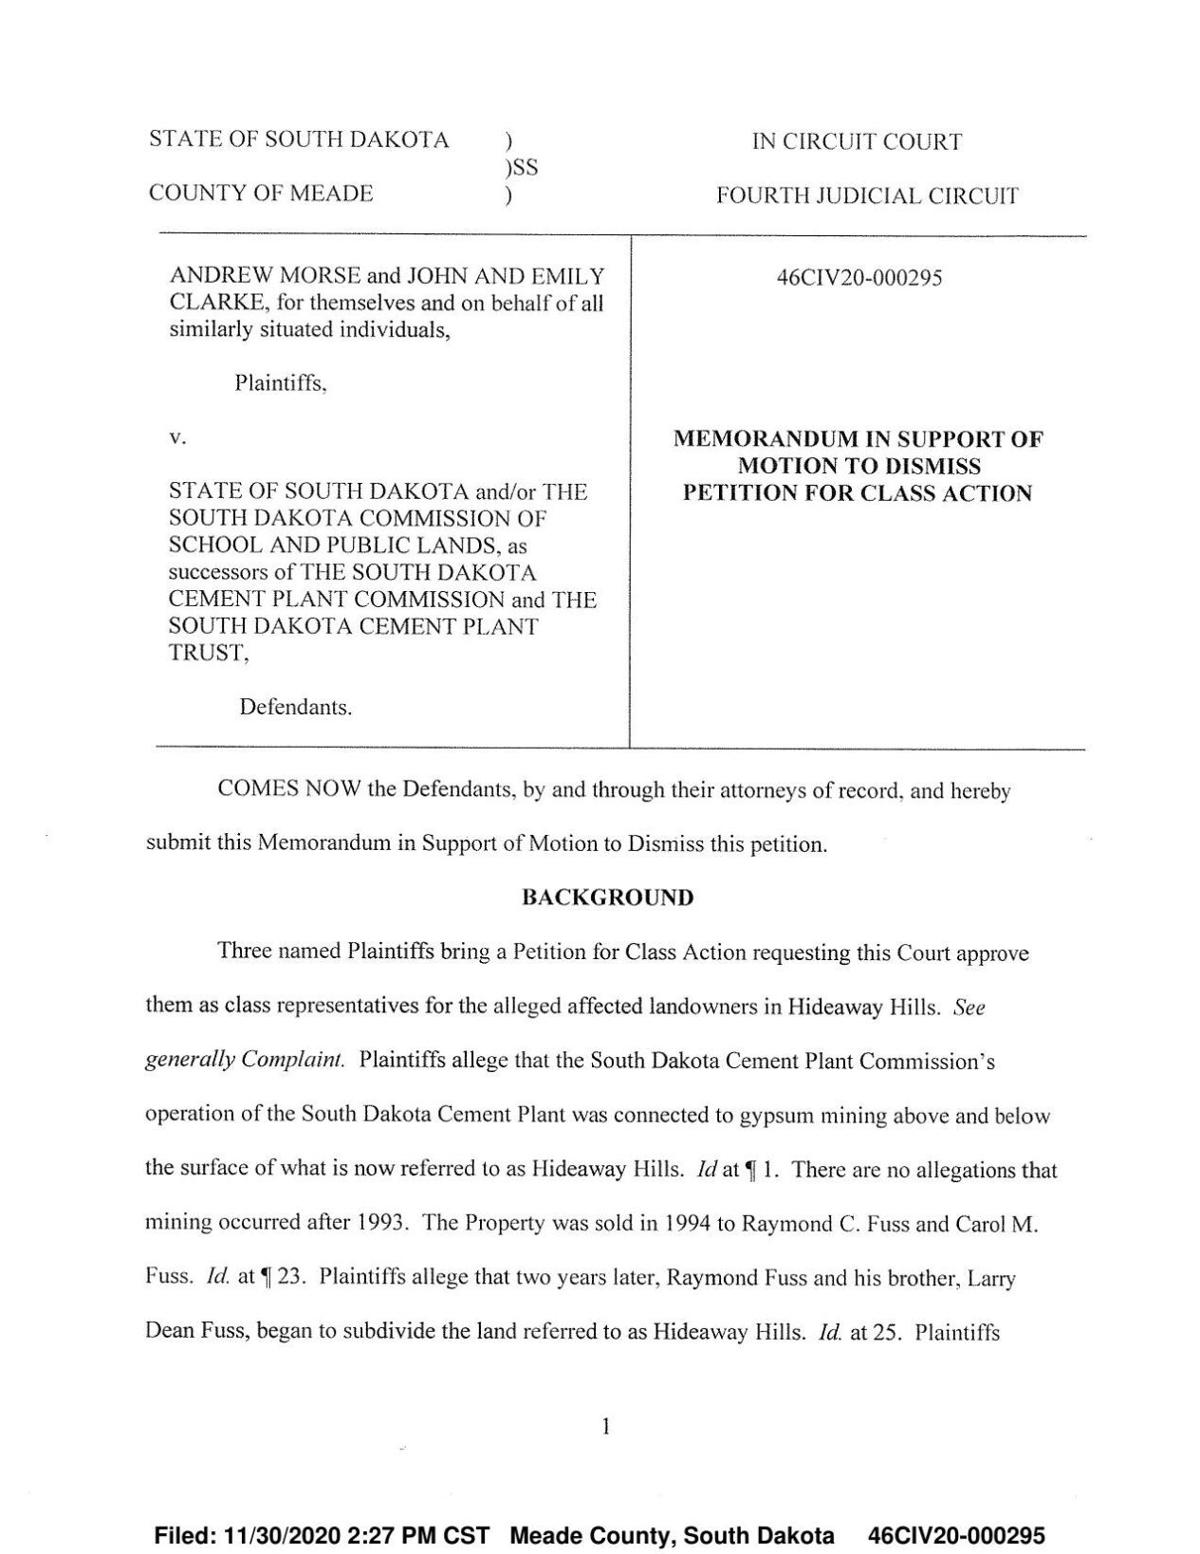 Motion to reject class-action lawsuit